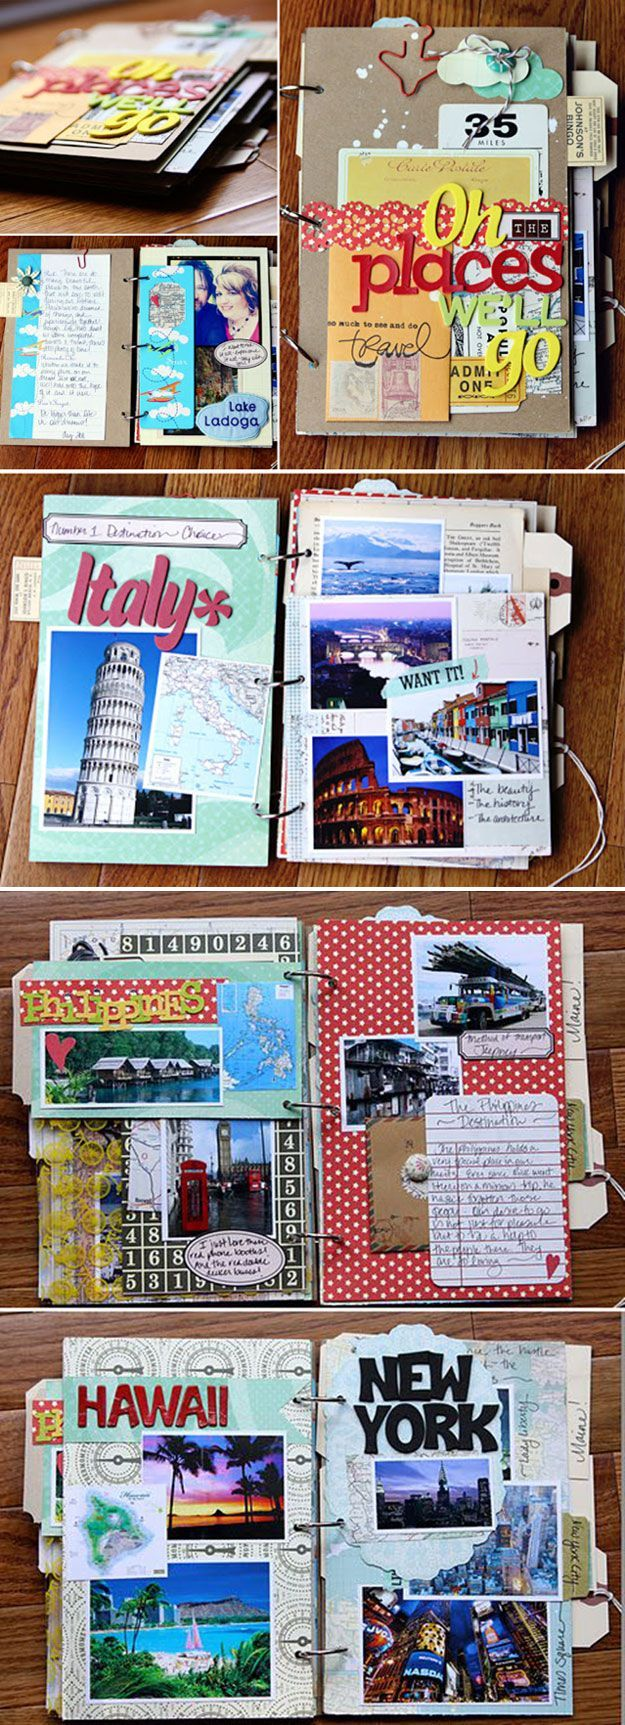 Les 25 meilleures id es de la cat gorie album photo scrapbooking sur pinterest album polaroid - Idee scrapbooking album photo ...